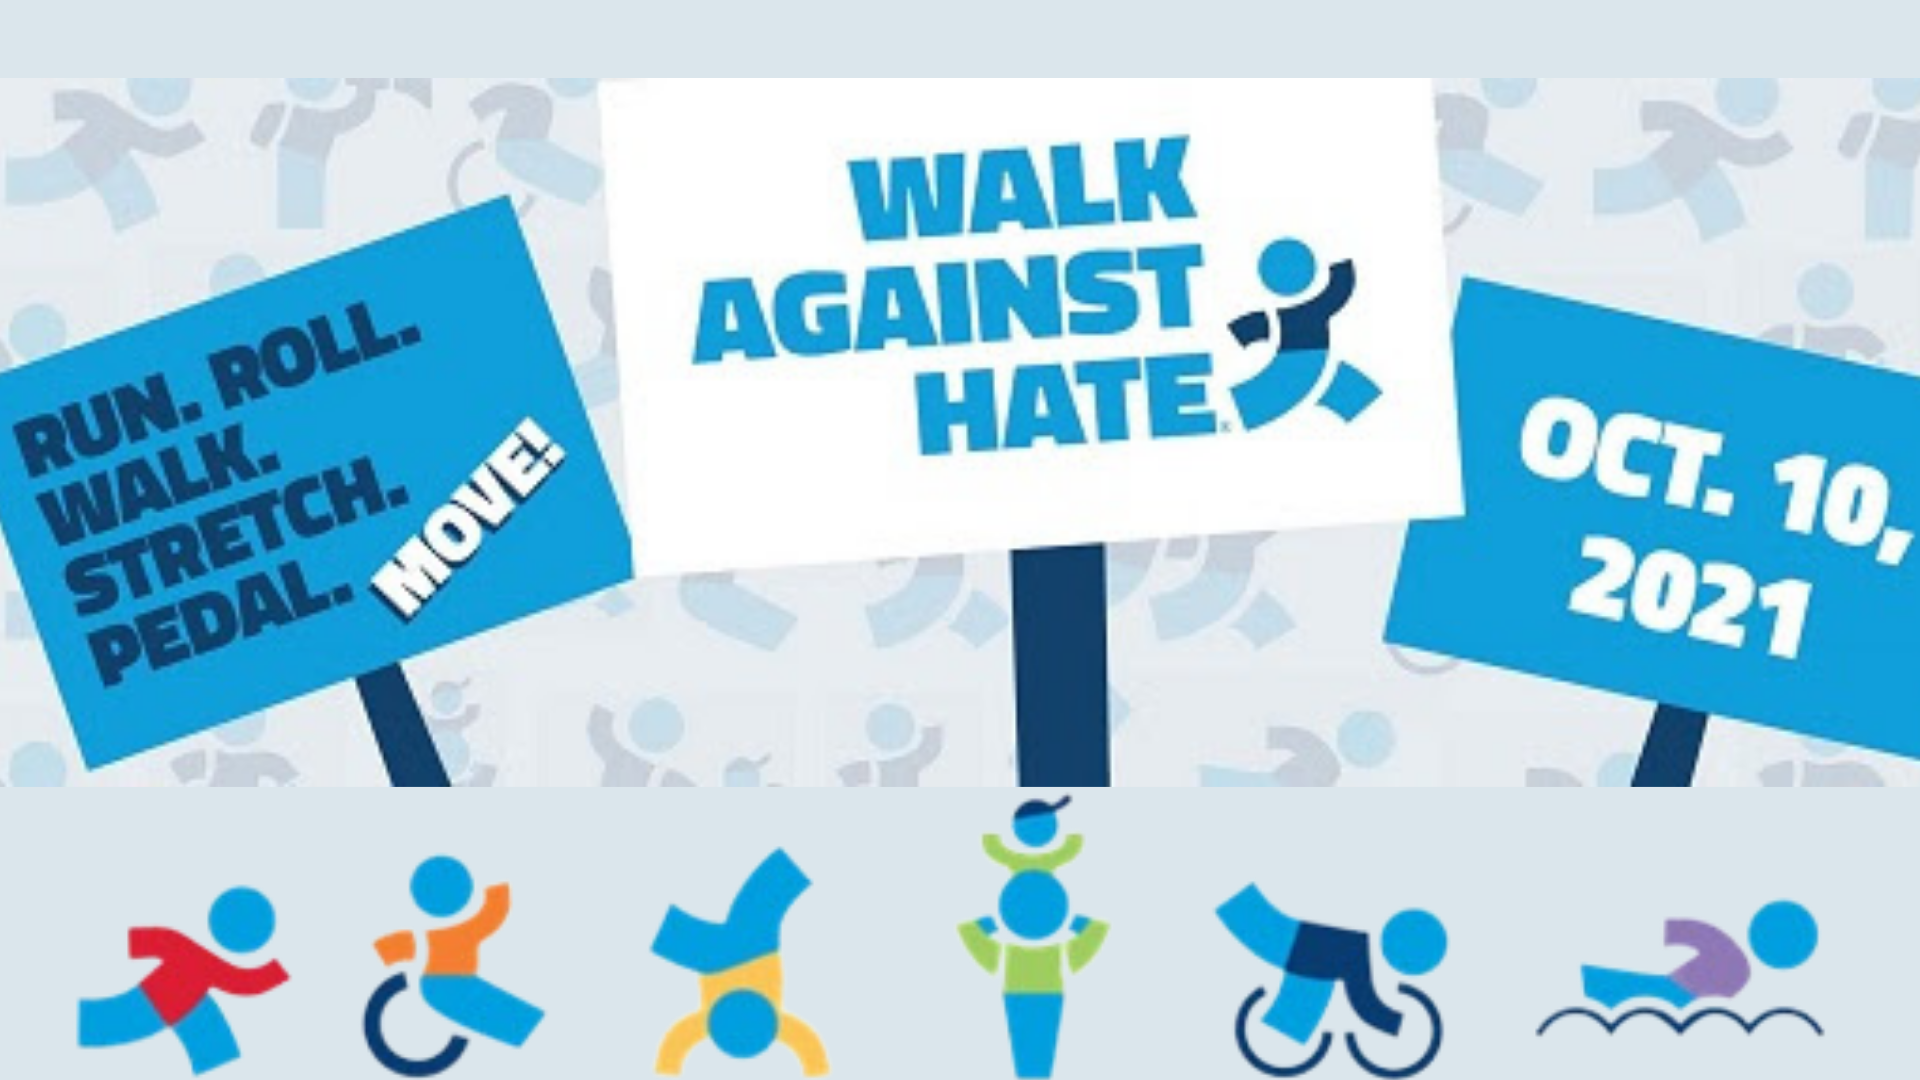 """<a href=""""https://www.betham.com/cbavirtualwalk#""""                                     target="""""""">                                                                 <span class=""""slider_title"""">                                     ADL: Walk Against Hate                                </span>                                                                 </a>                                                                                                                                                                                       <span class=""""slider_description"""">Join the Beth Am Team in supporting ADL's work to fight hate on the streets and online by making a contribution to our team and sharing this page with your family and friends.</span>                                                                                     <a href=""""https://www.betham.com/cbavirtualwalk#"""" class=""""slider_link""""                             target="""""""">                             Click here to learn more.                            </a>"""